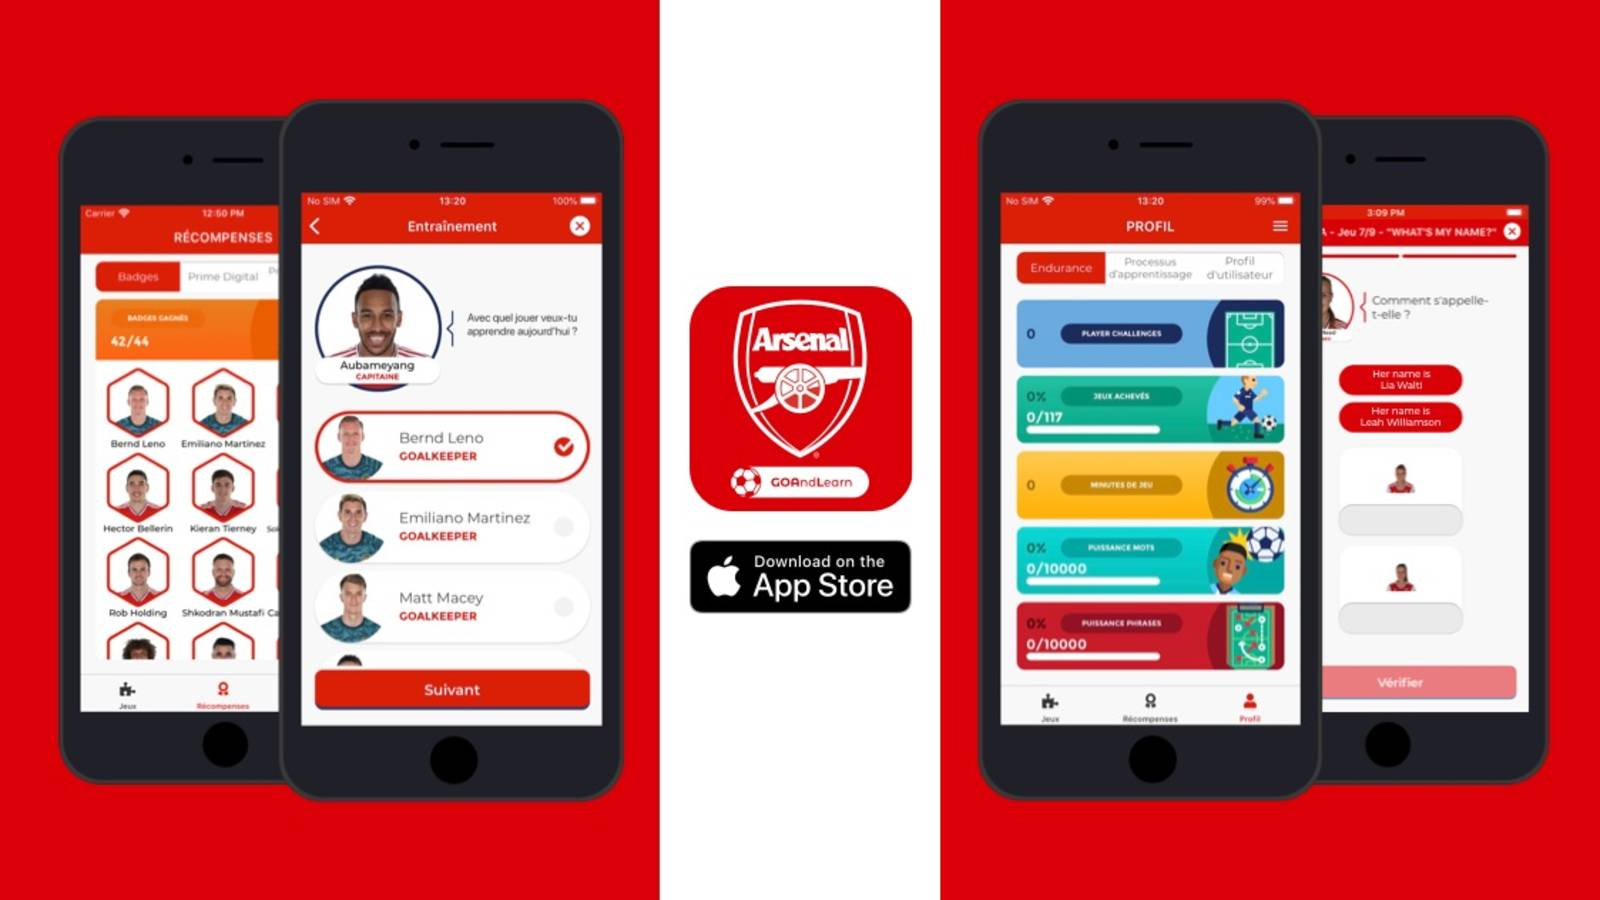 Free Access To Language App With Mudita Sports Club Announcement News Arsenal Com